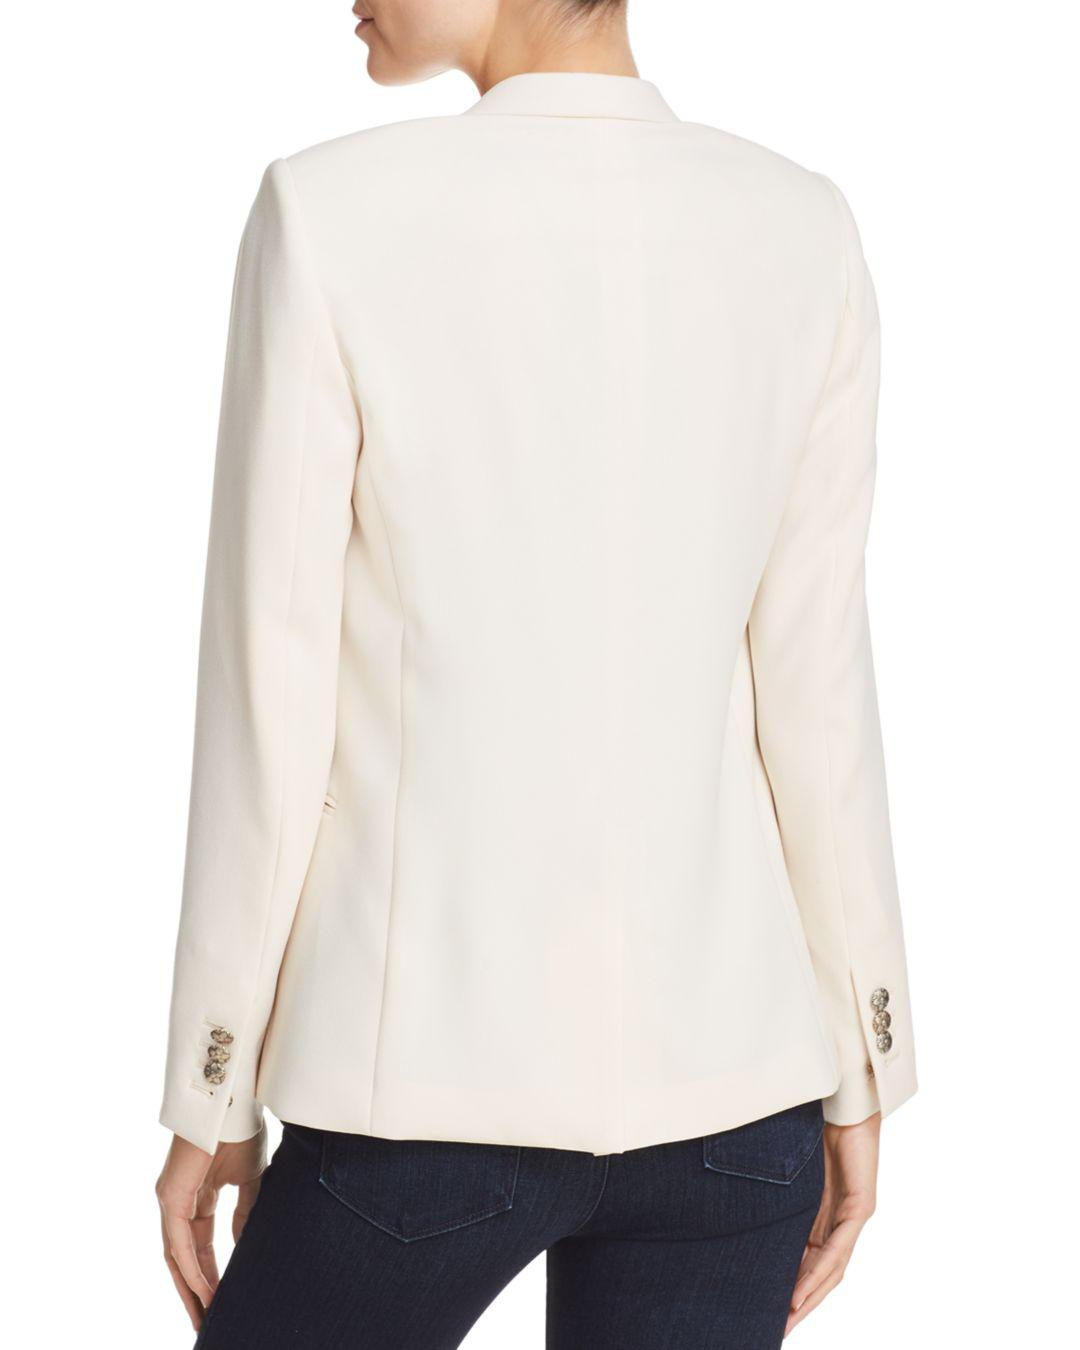 ad89ab609dd32 The Kooples Daisy Crepe Blazer in White - Lyst